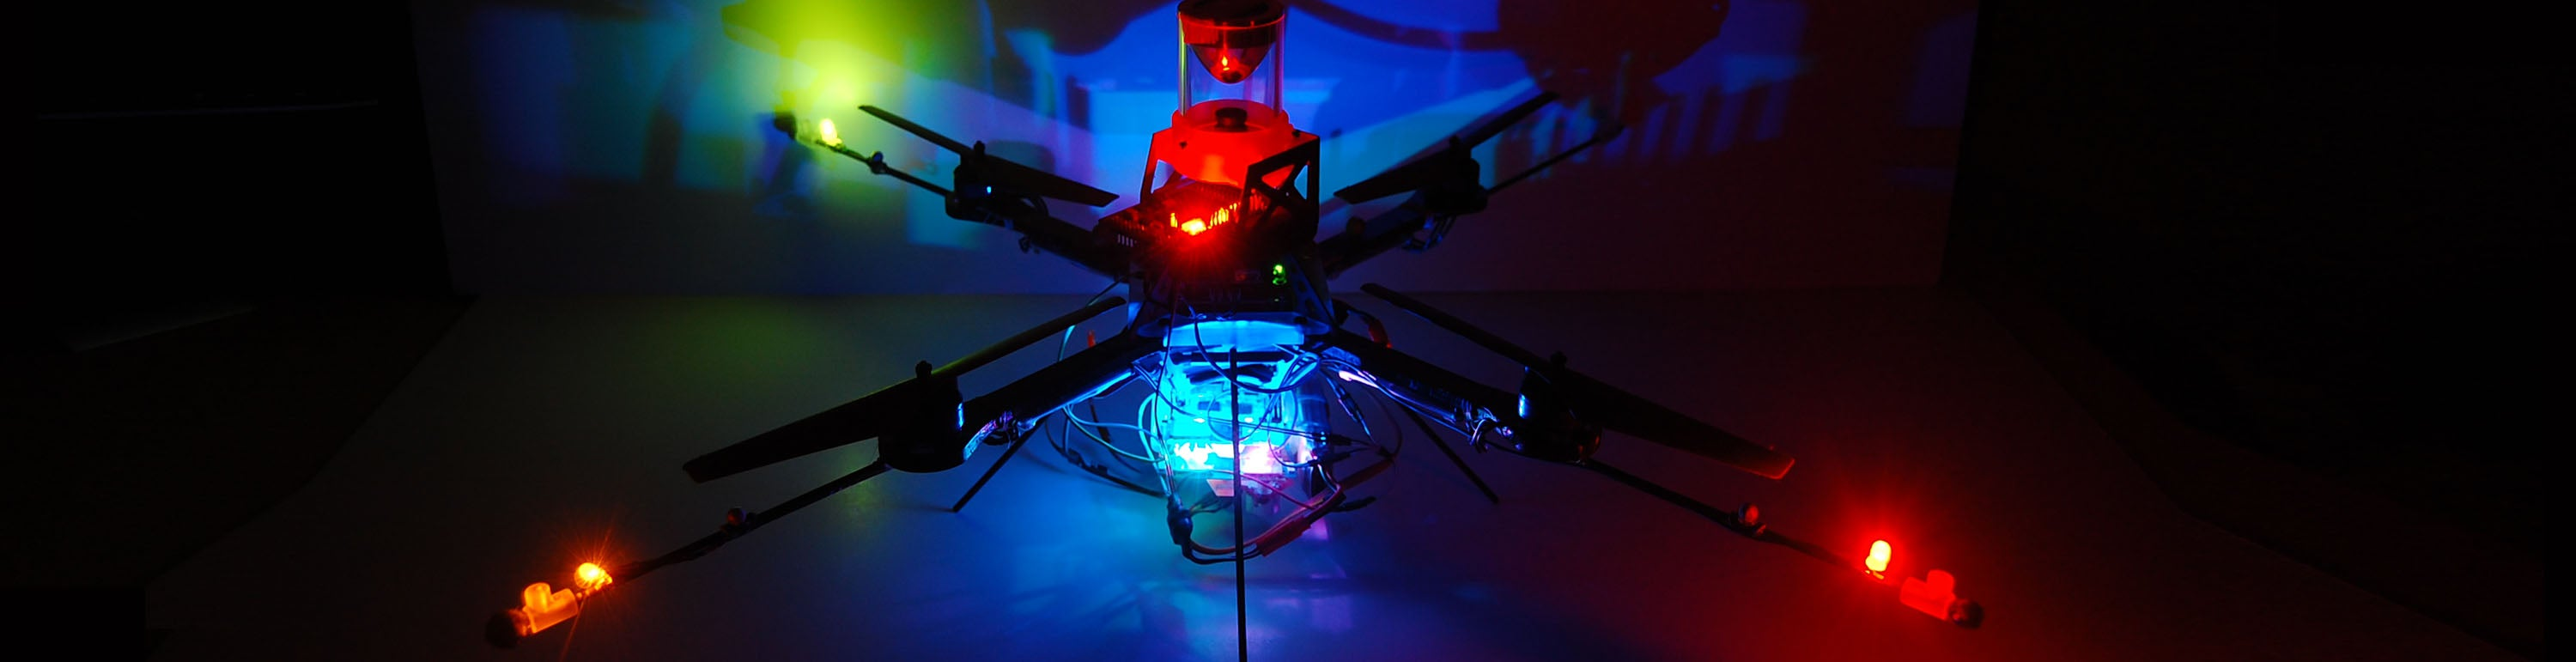 An unmanned aerial vehicle with colored lights.